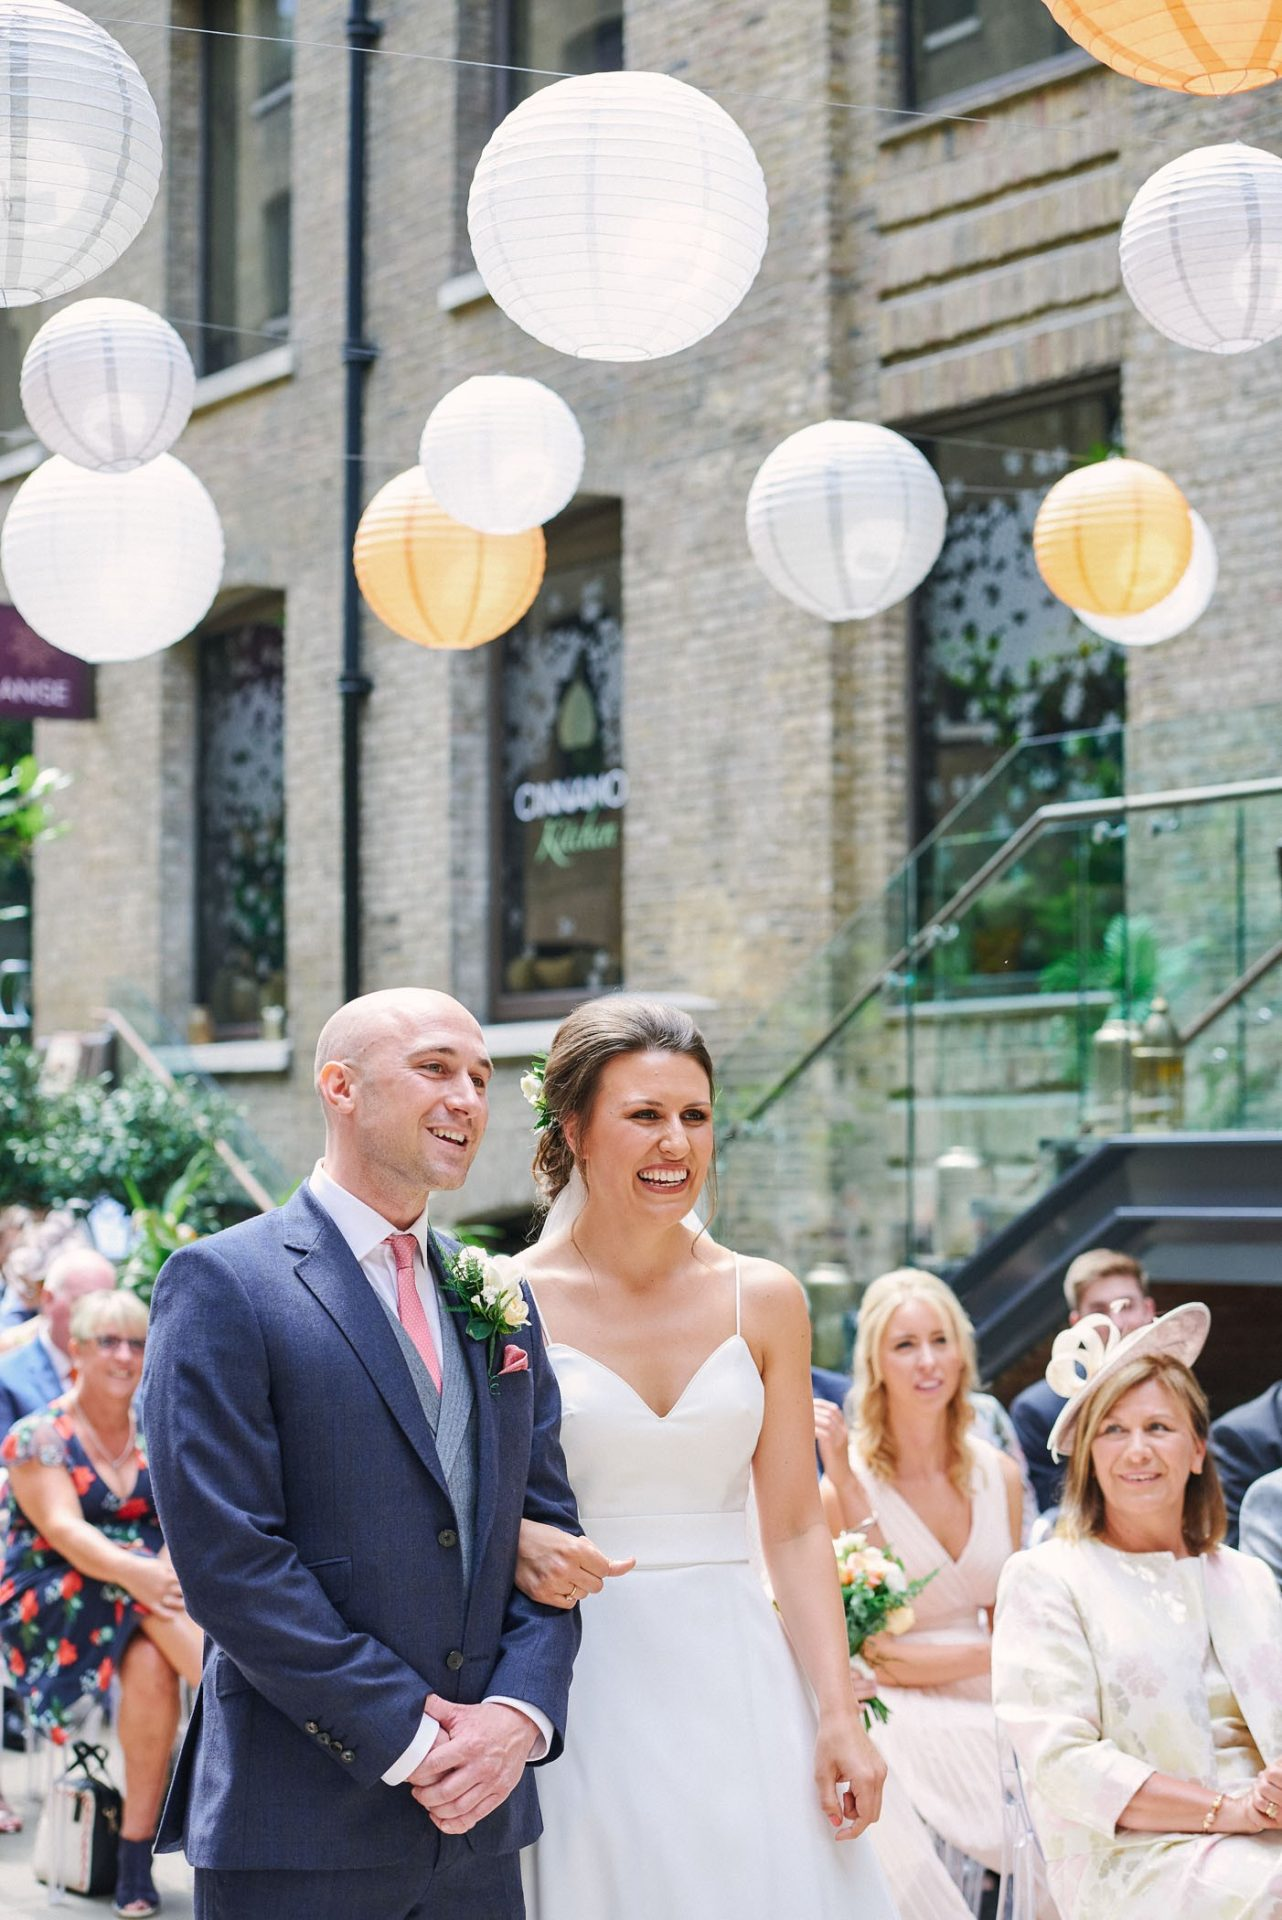 Bride and groom smiling during courtyard wedding ceremony at Devonshire Terrace in central London